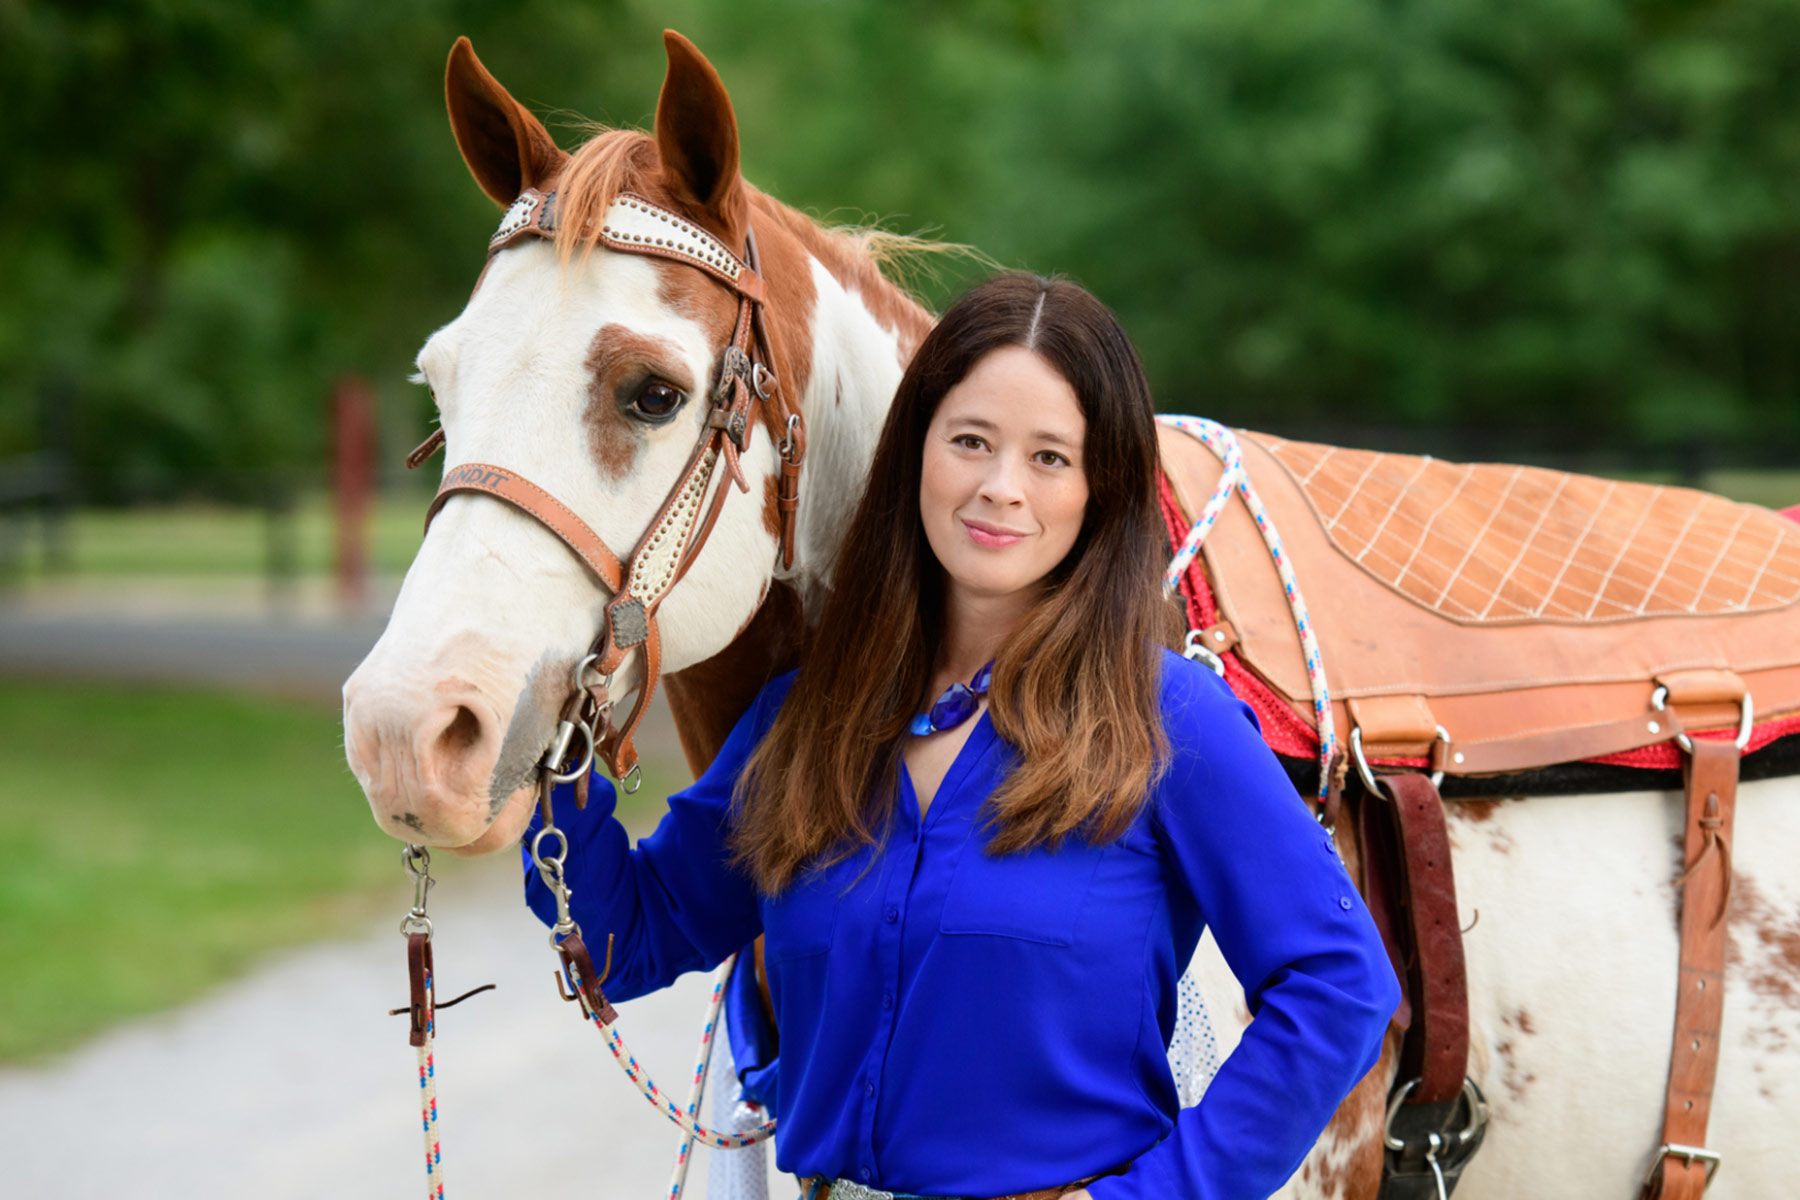 Miko McFarland, an Asian-American woman with long dark hair, stands next to a white horse with brown splotches. Miko is wearing a blue top and is smiling slightly.